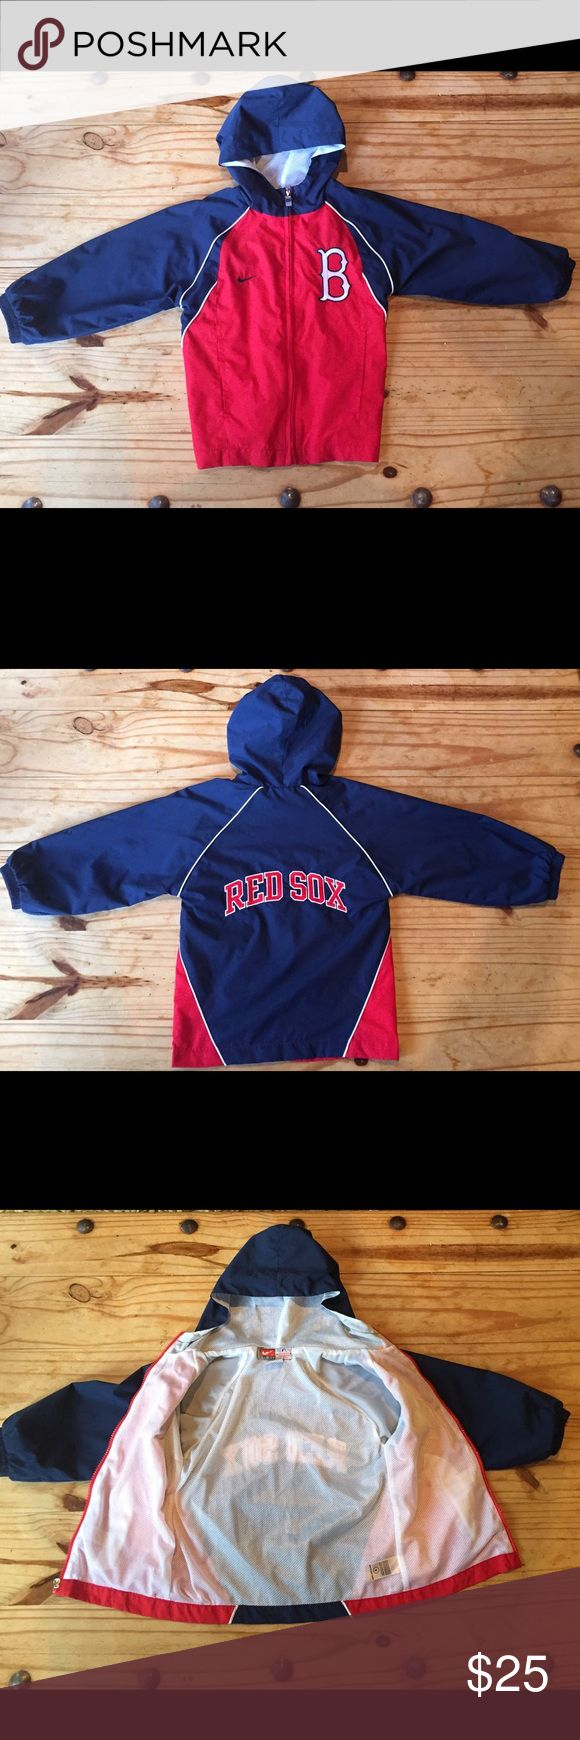 Official Red Sox Kids Nike Windbreaker Jacket Official MLB Red Sox merchandise in perfect condition! Nike lined windbreaker zippered jacket with pockets and hood. Red Sox logo on front and back. Jackets & Coats